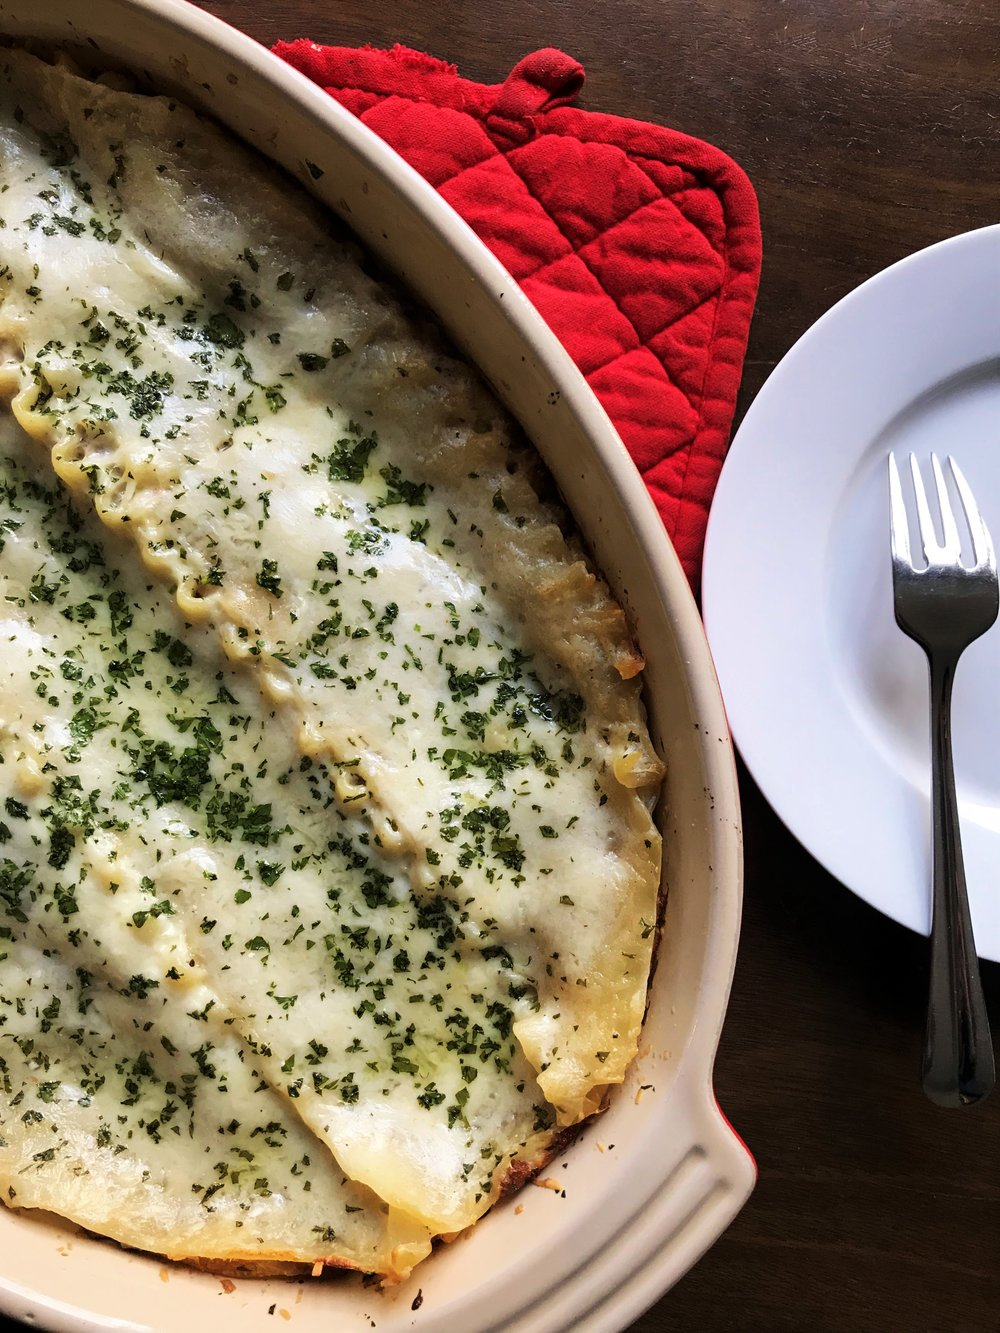 Classic Lasagna, made with Bolognese sauce and Parmesan bechamel in the Adventure Kitchen, with a sprinkle of pecorino Romano and parsley. Plan ahead to make the Bolognese sauce the day before.